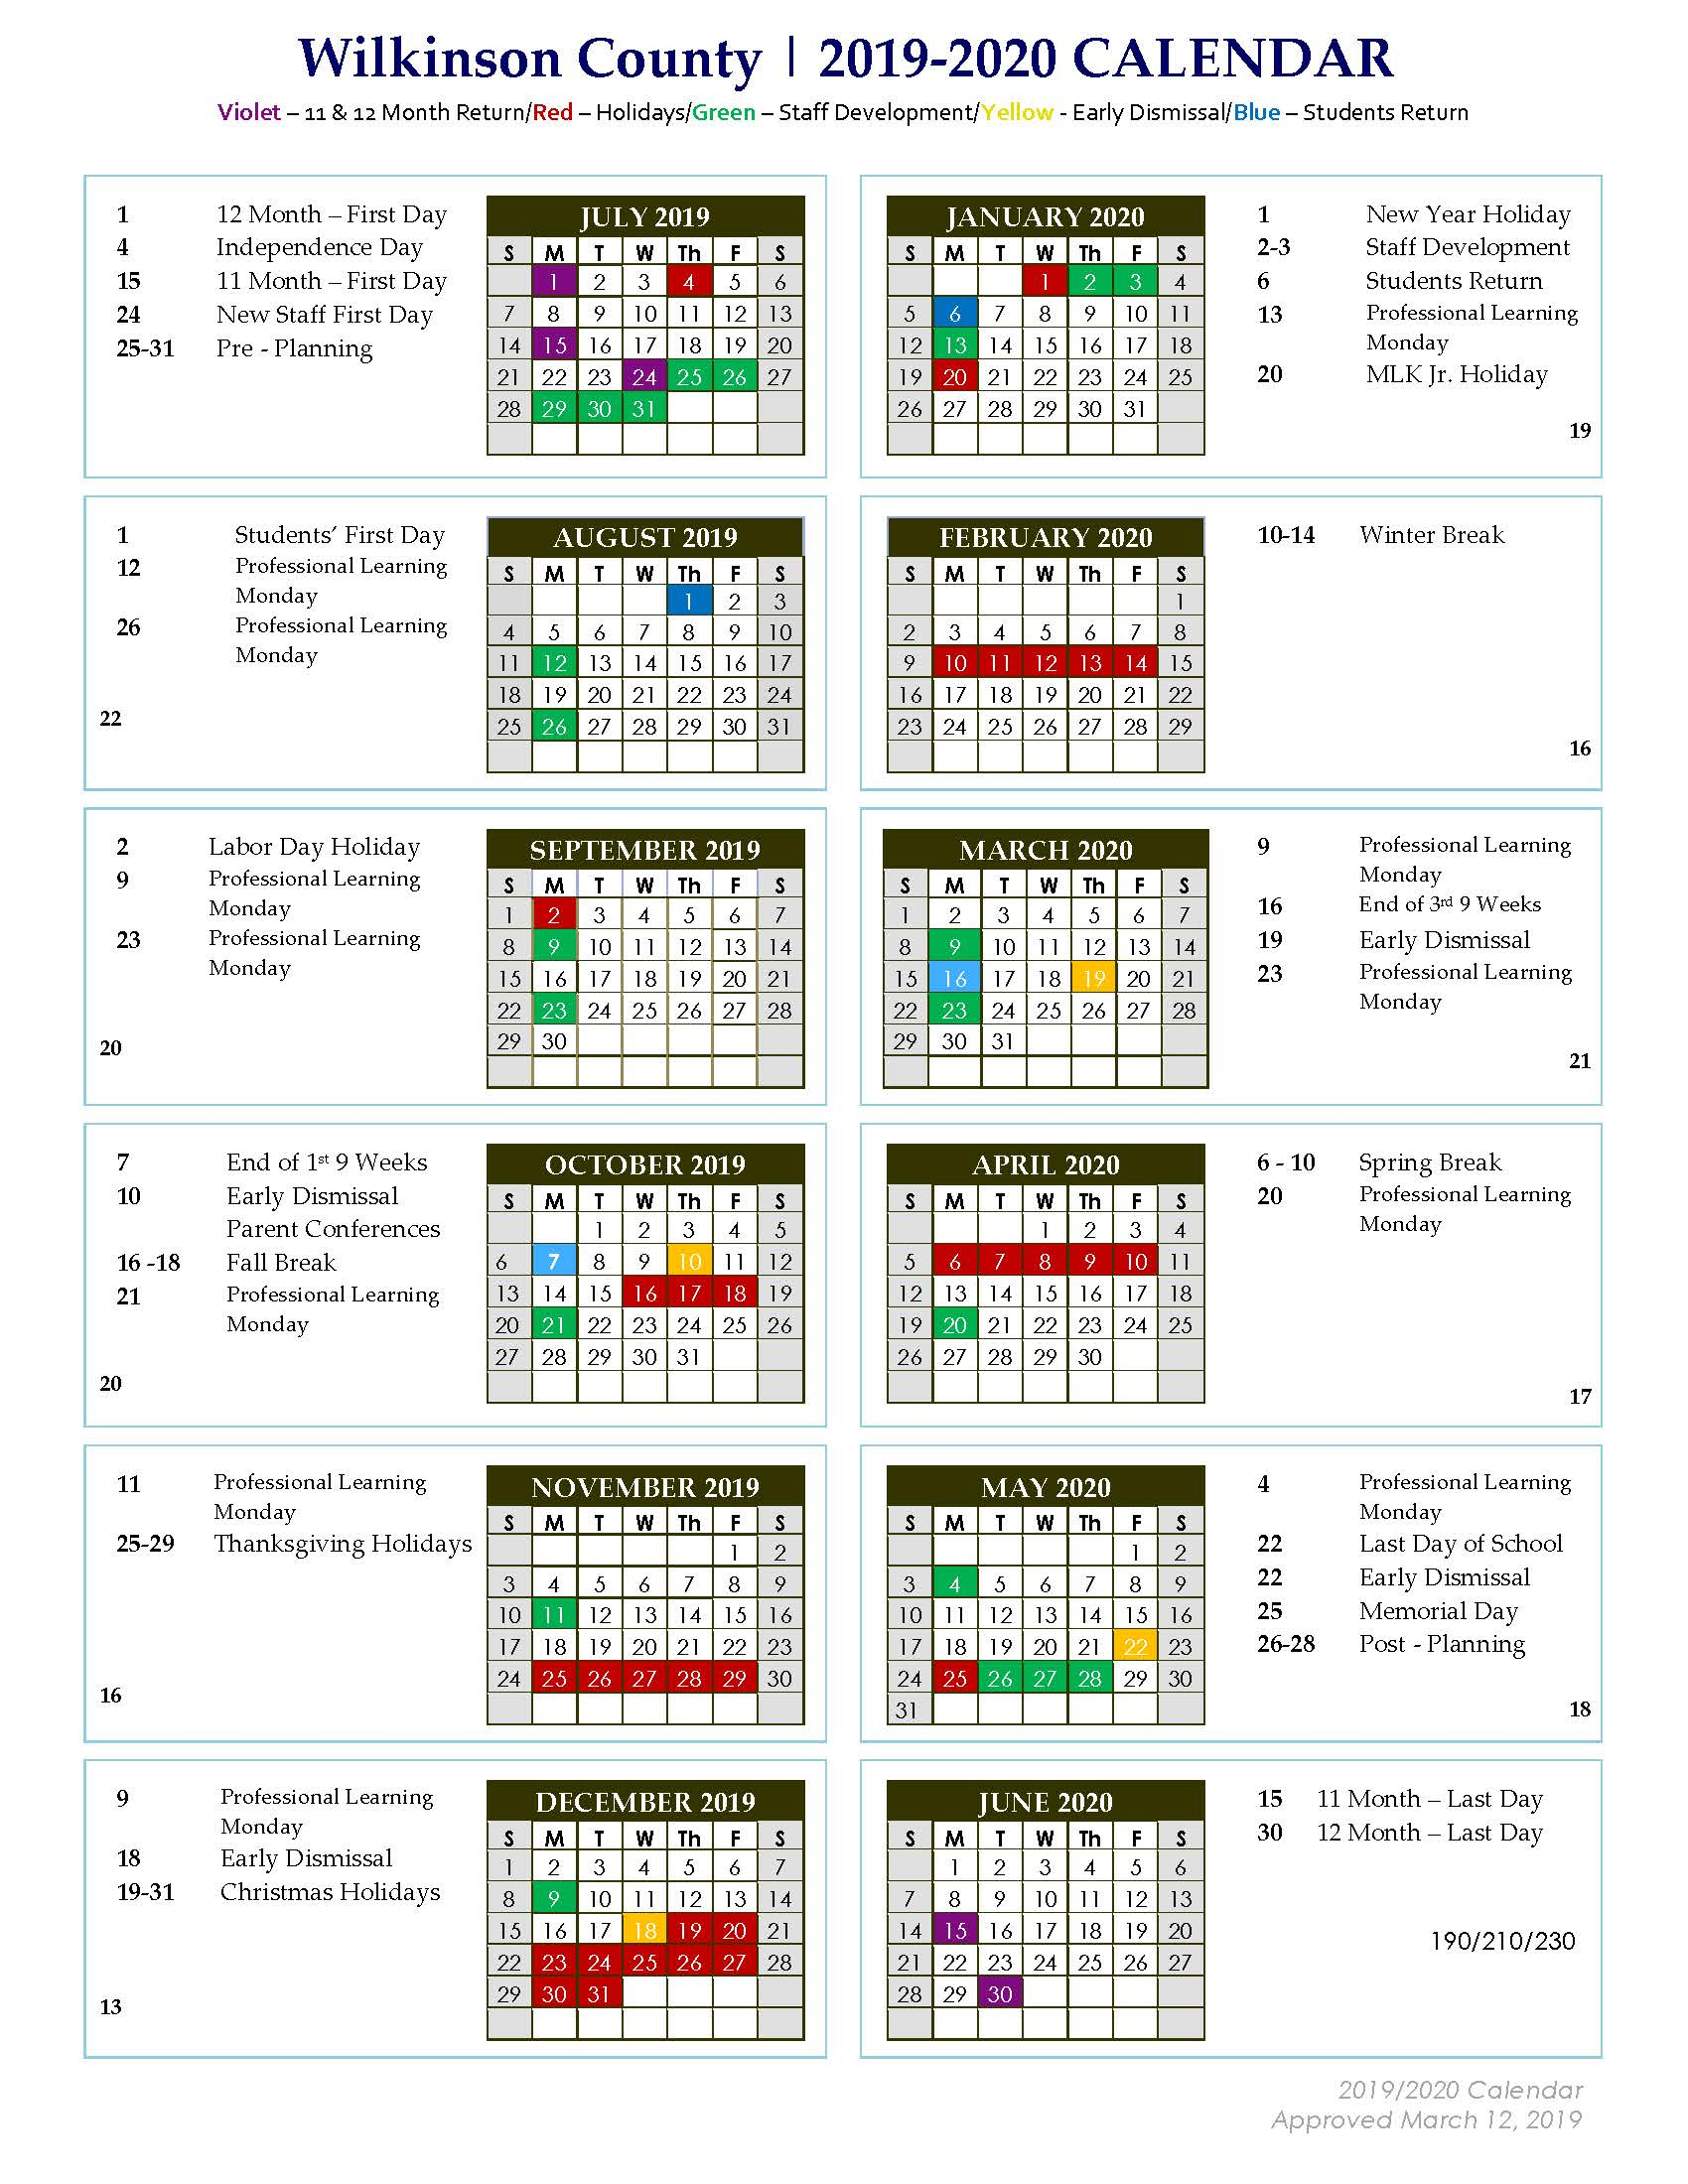 Wilkinson County Middle: 2019 - 2020 Approved District Calendar within Doe School Calnder 2015-2020